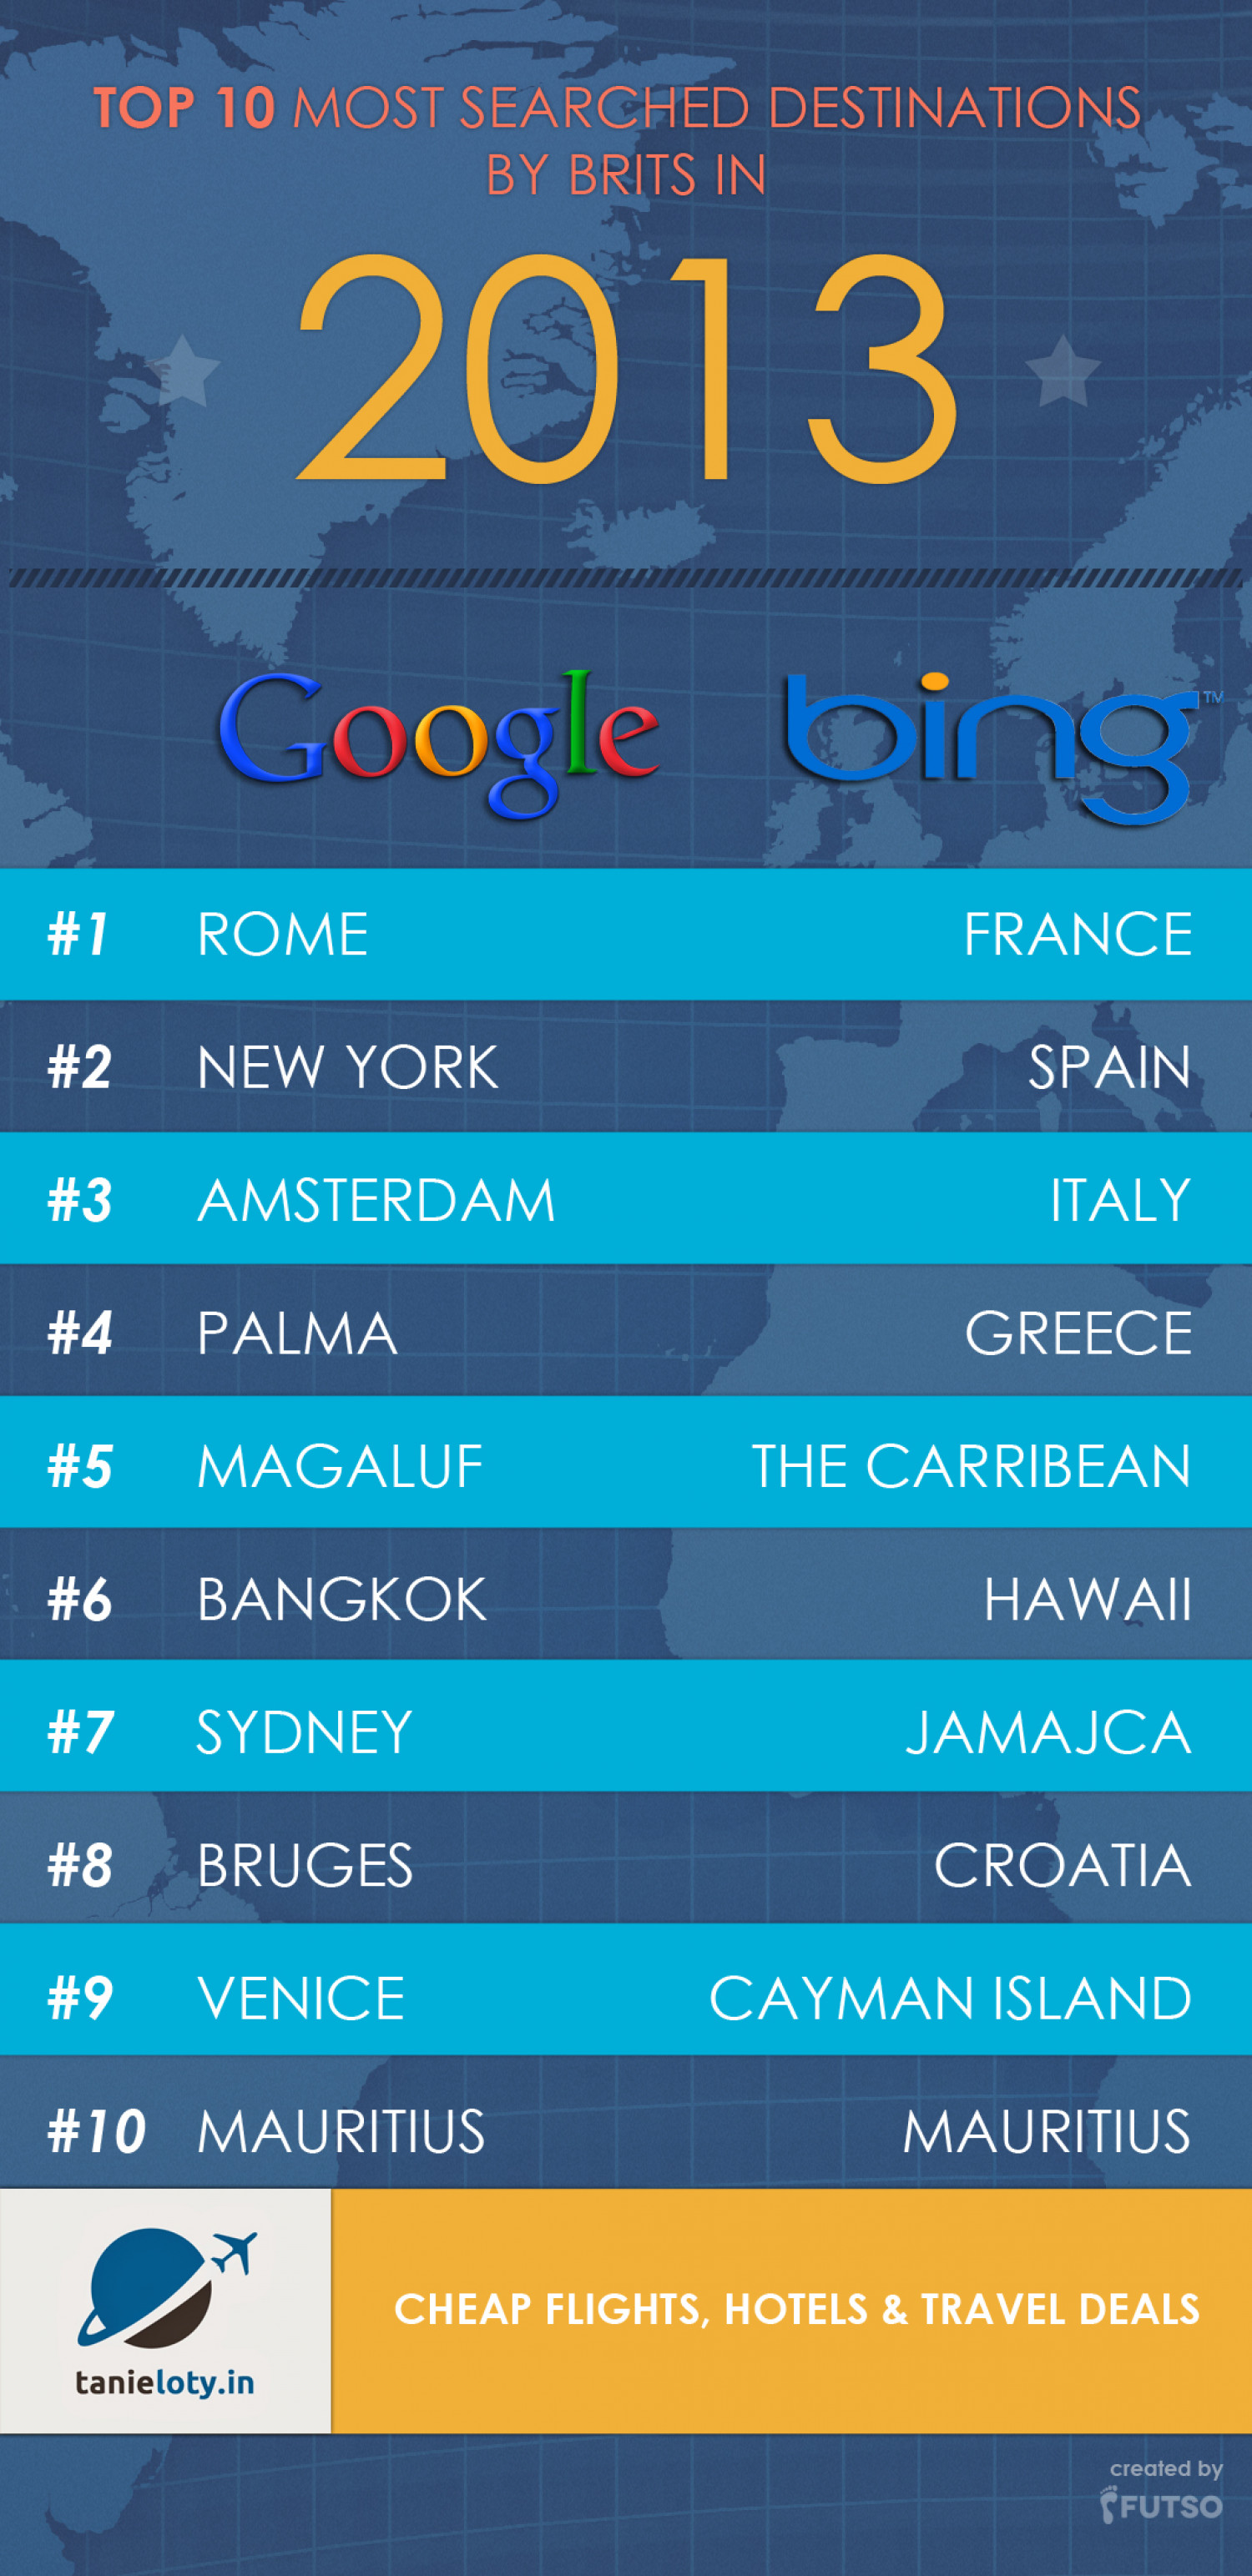 Top 10 Most Searched Destination in 2013 Infographic